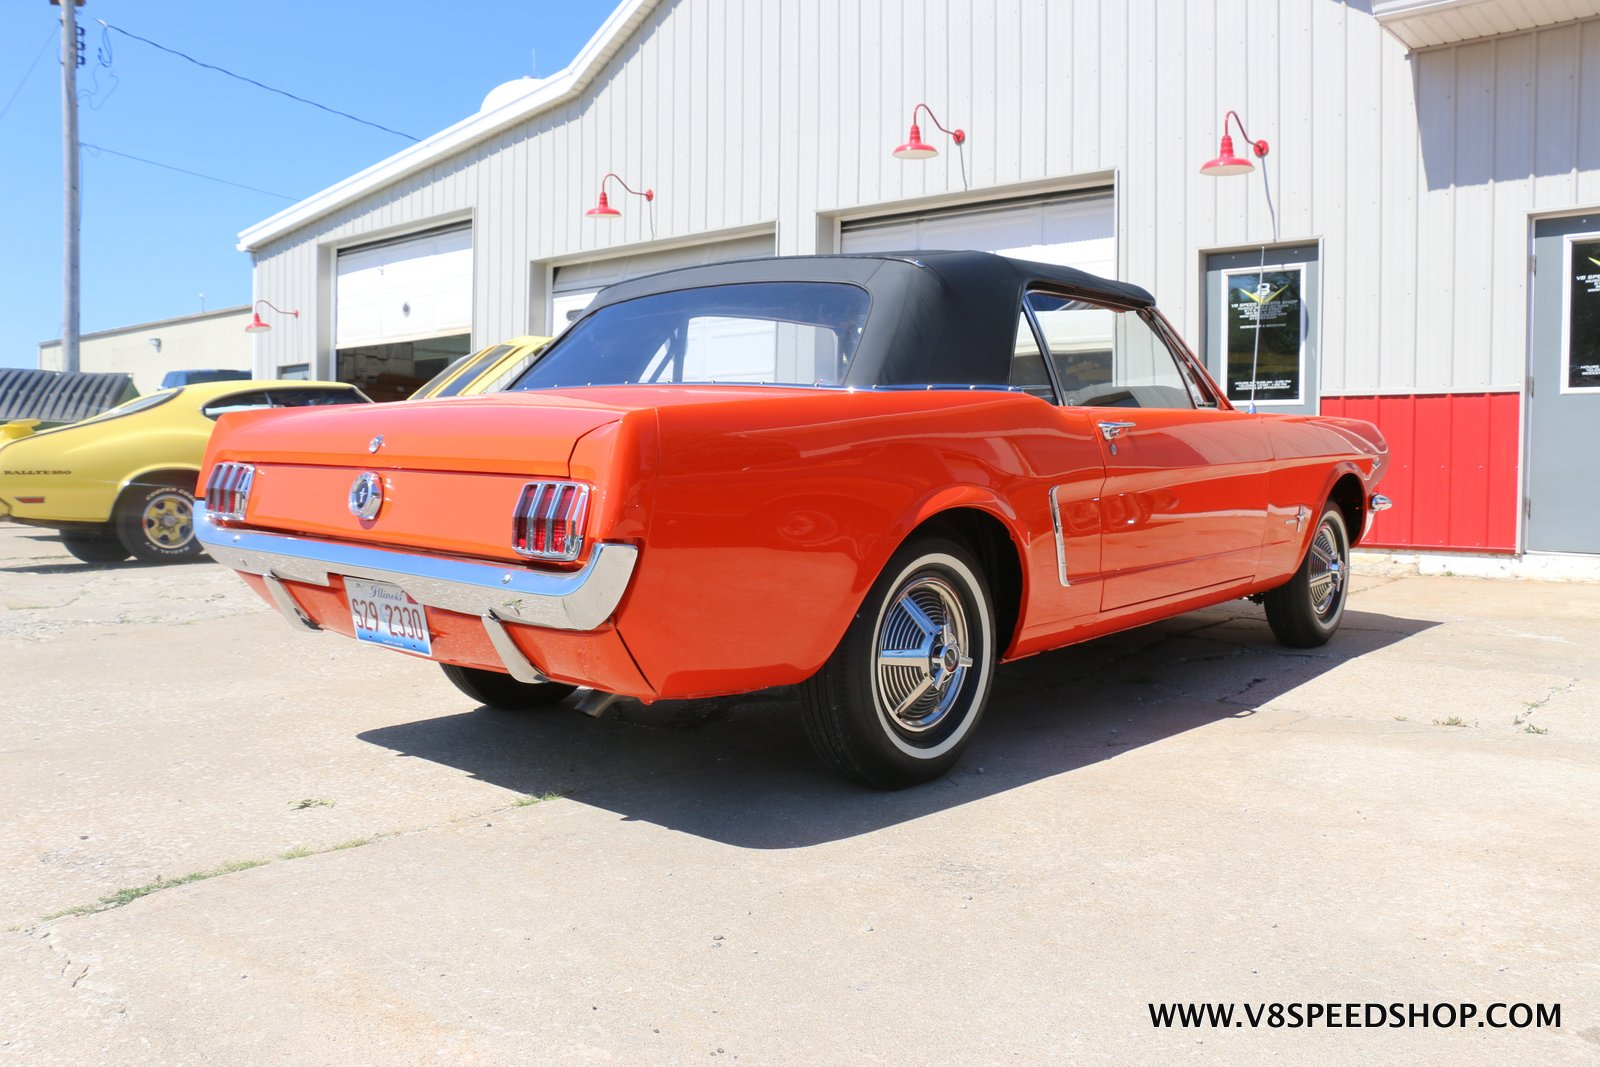 1964 Ford Mustang Convertible Details at the V8 Speed and Resto Shop